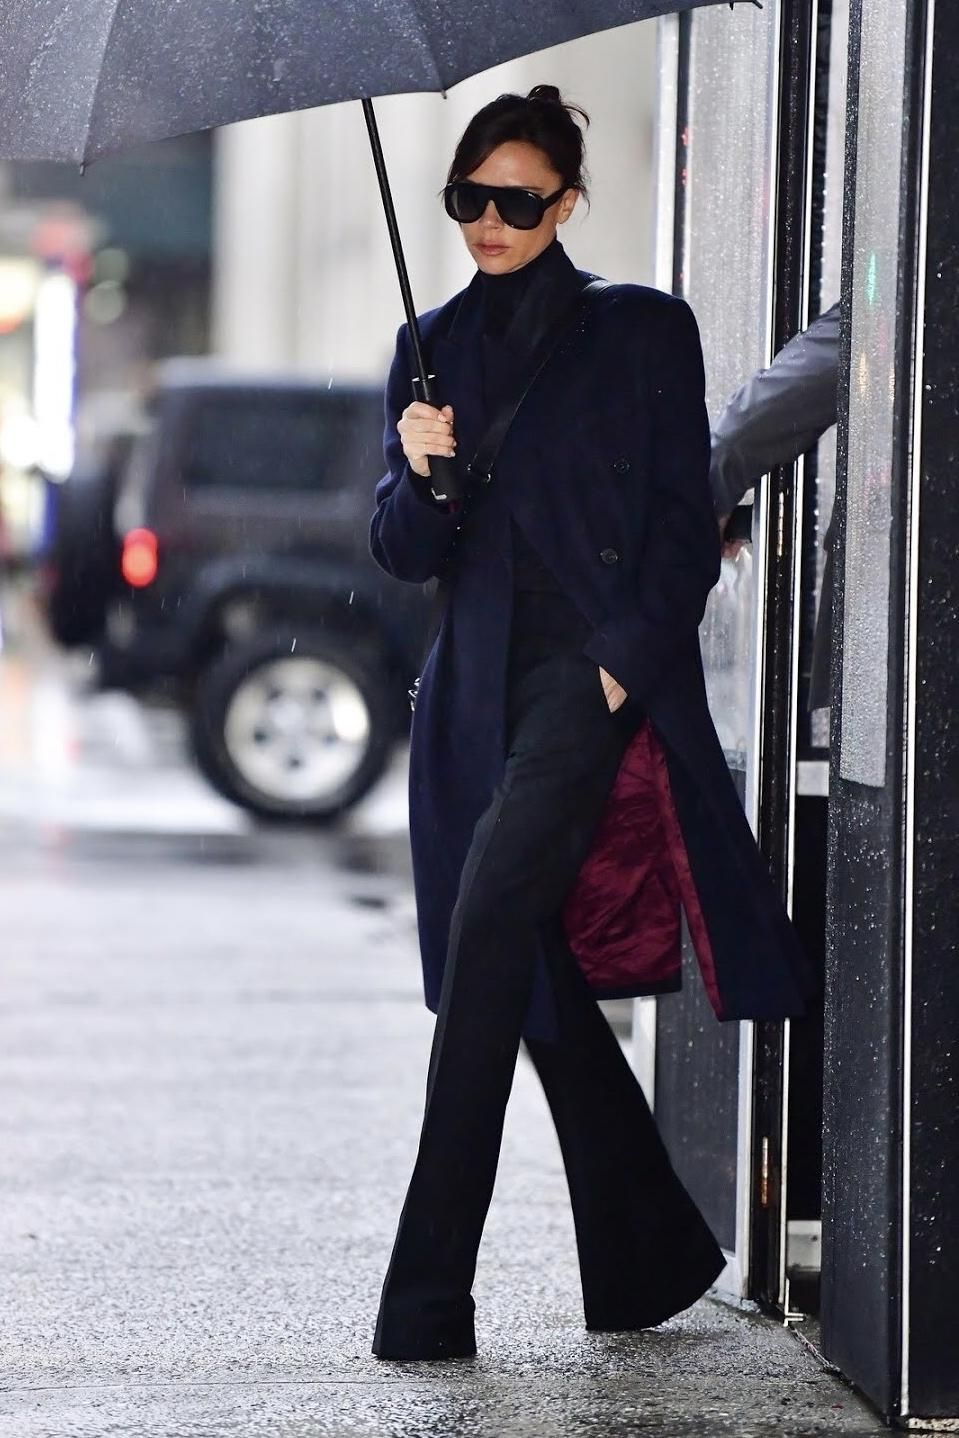 Victoria Beckham New York City February 11 2018 - Star Style